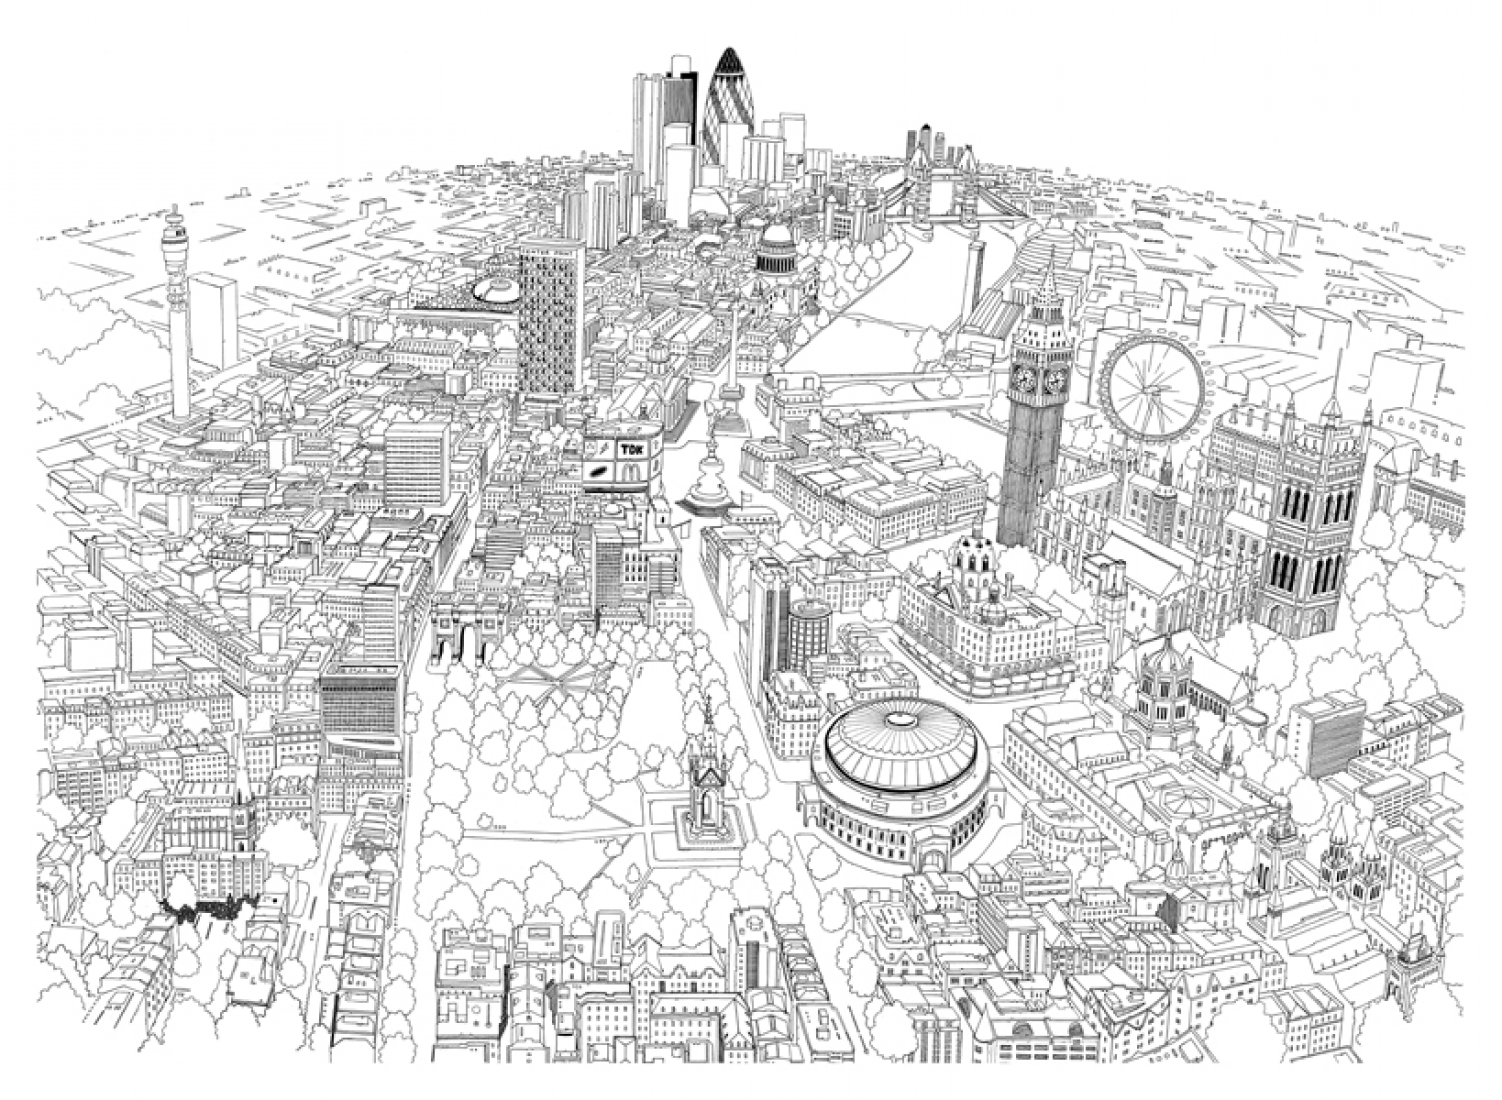 Traveller Magazine. Illustrations by Chris Denty. You can find his work at http://www.chrisdent.co.uk/